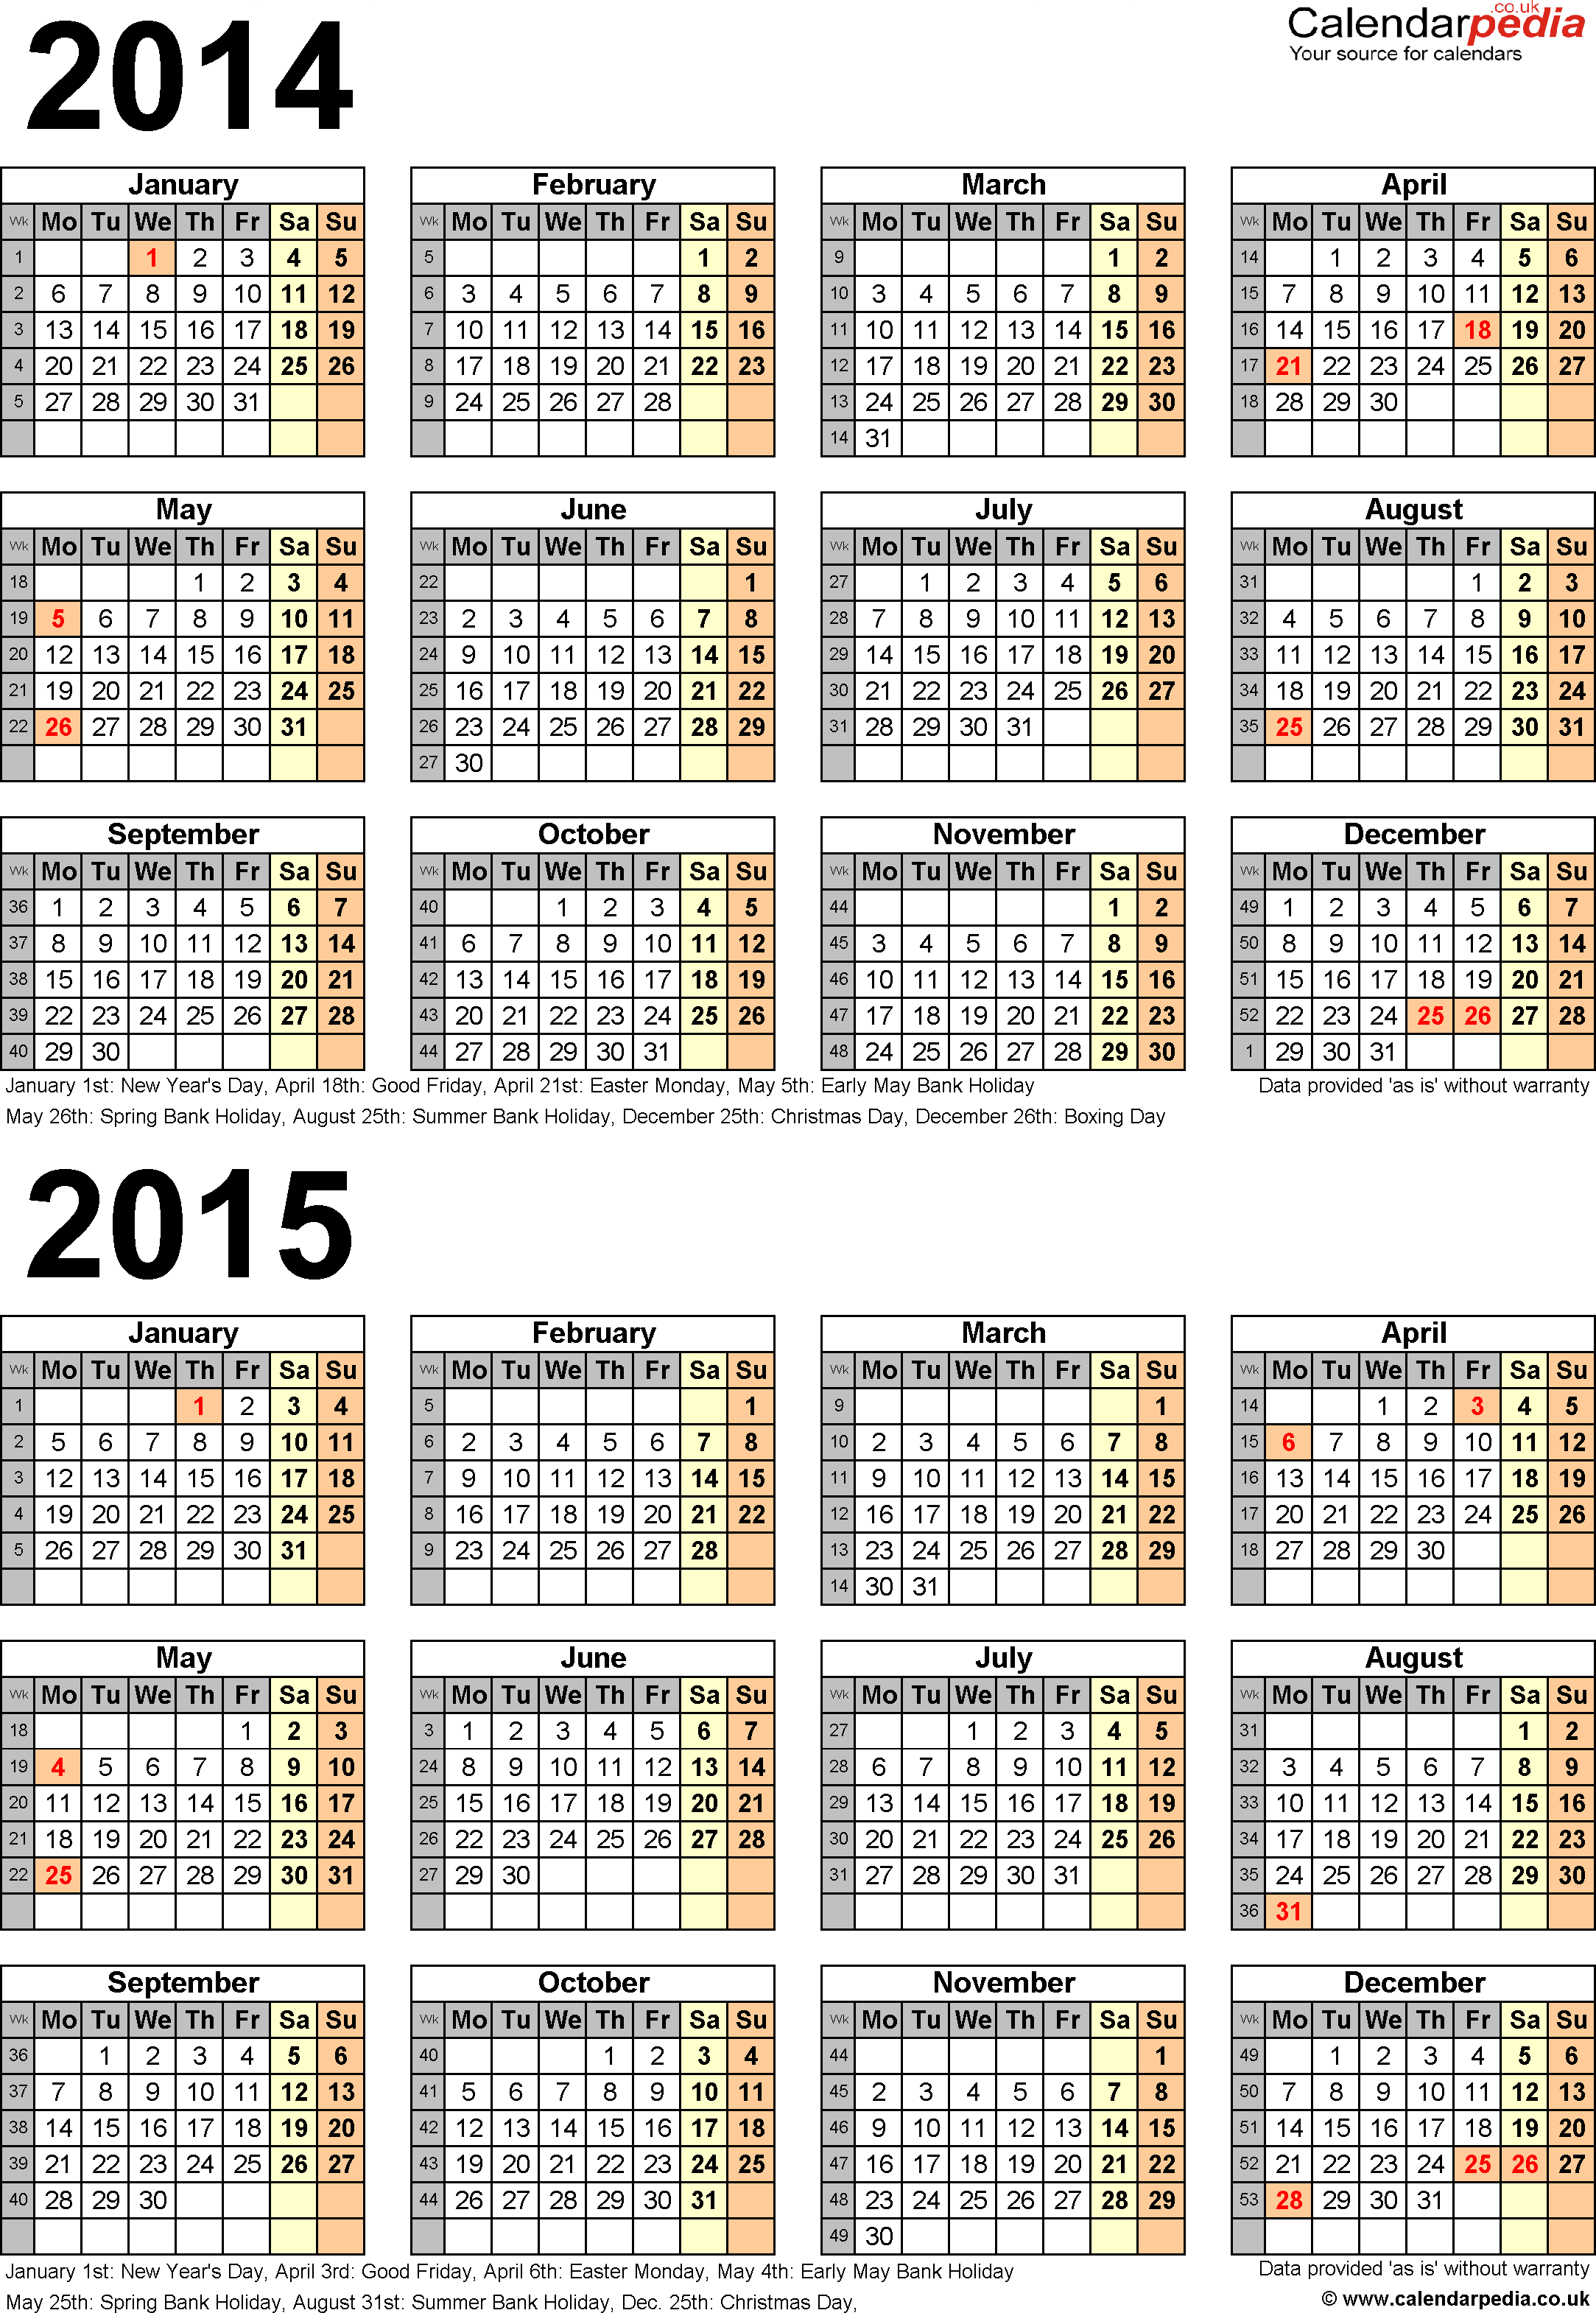 Download Template 4: Excel template for two year calendar 2014/2015 (portrait orientation, 1 page, A4)